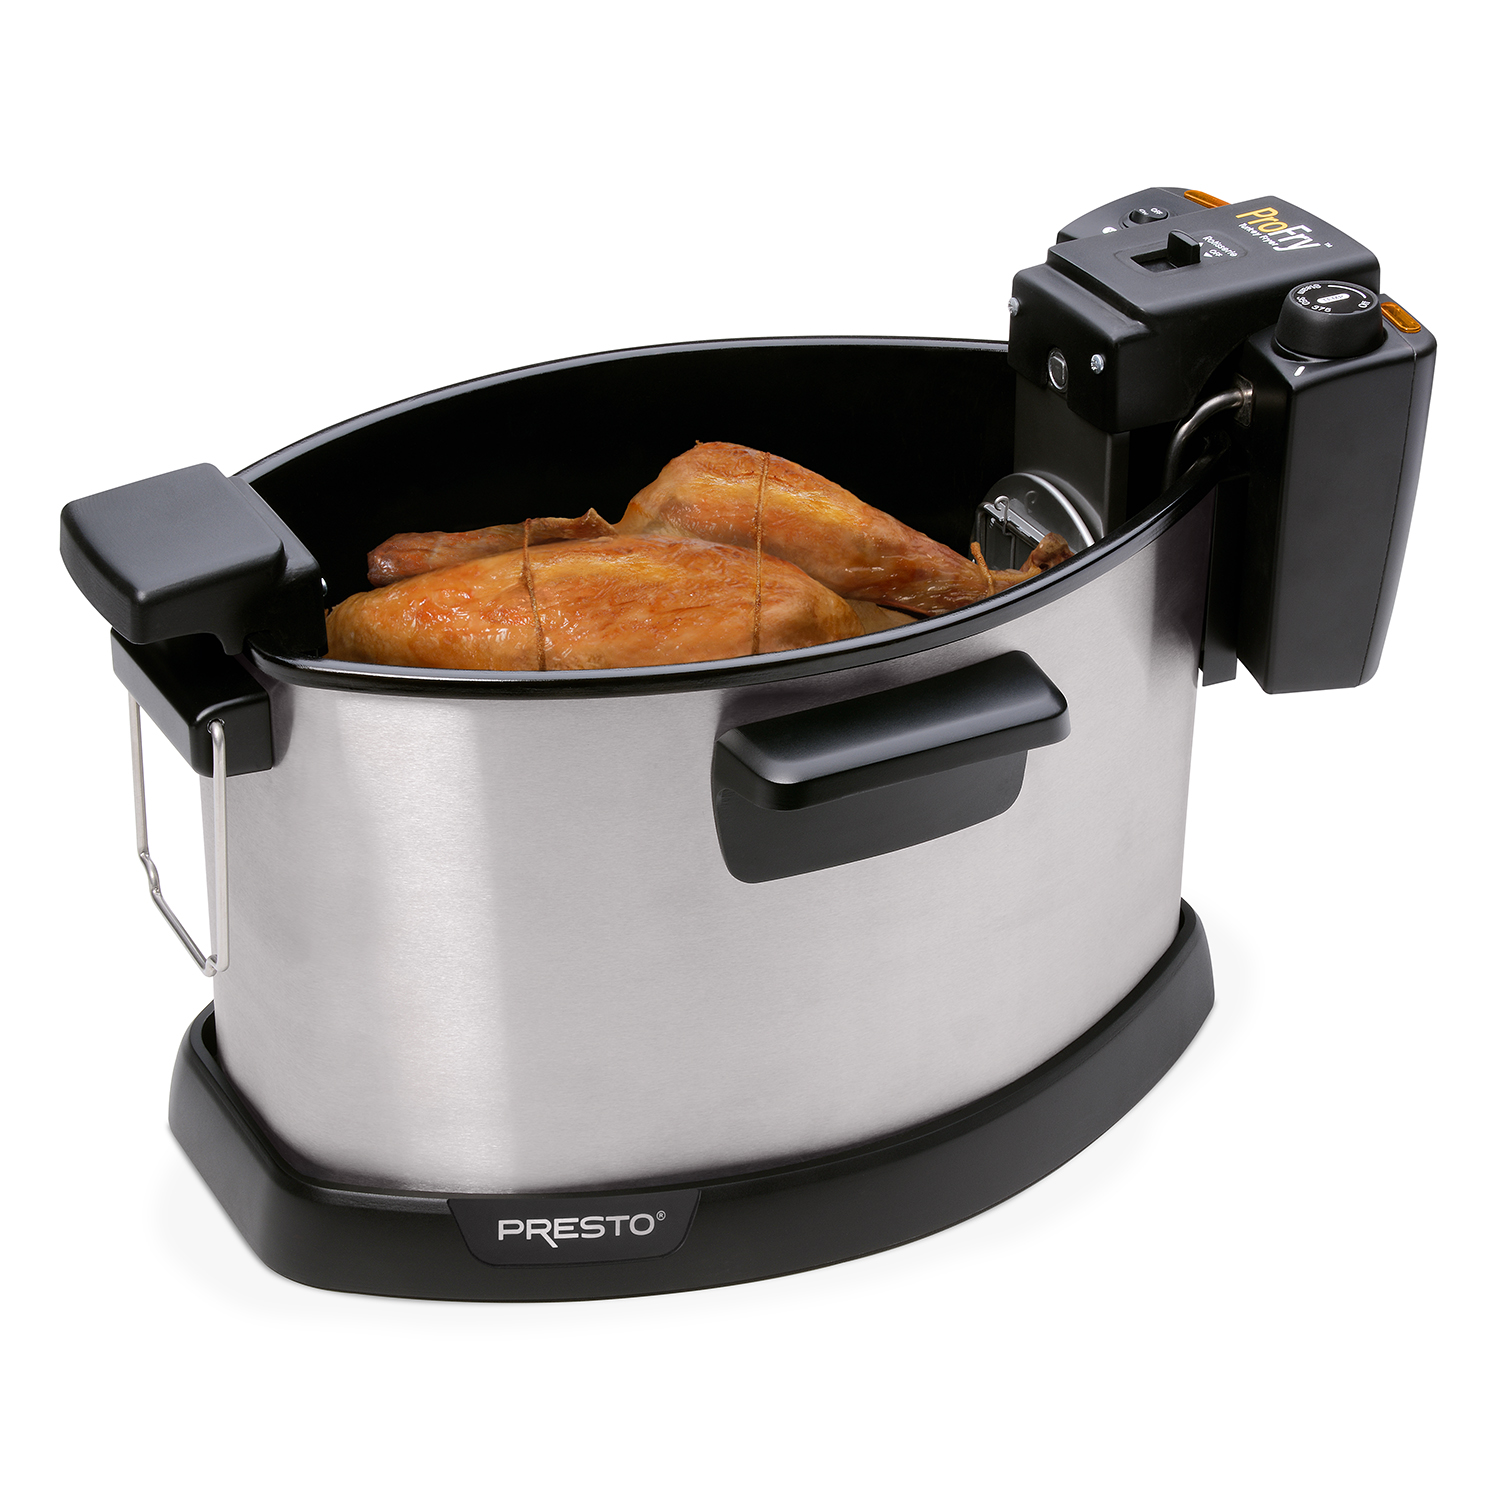 Presto ProFry™ Electric Rotisserie Turkey Fryer